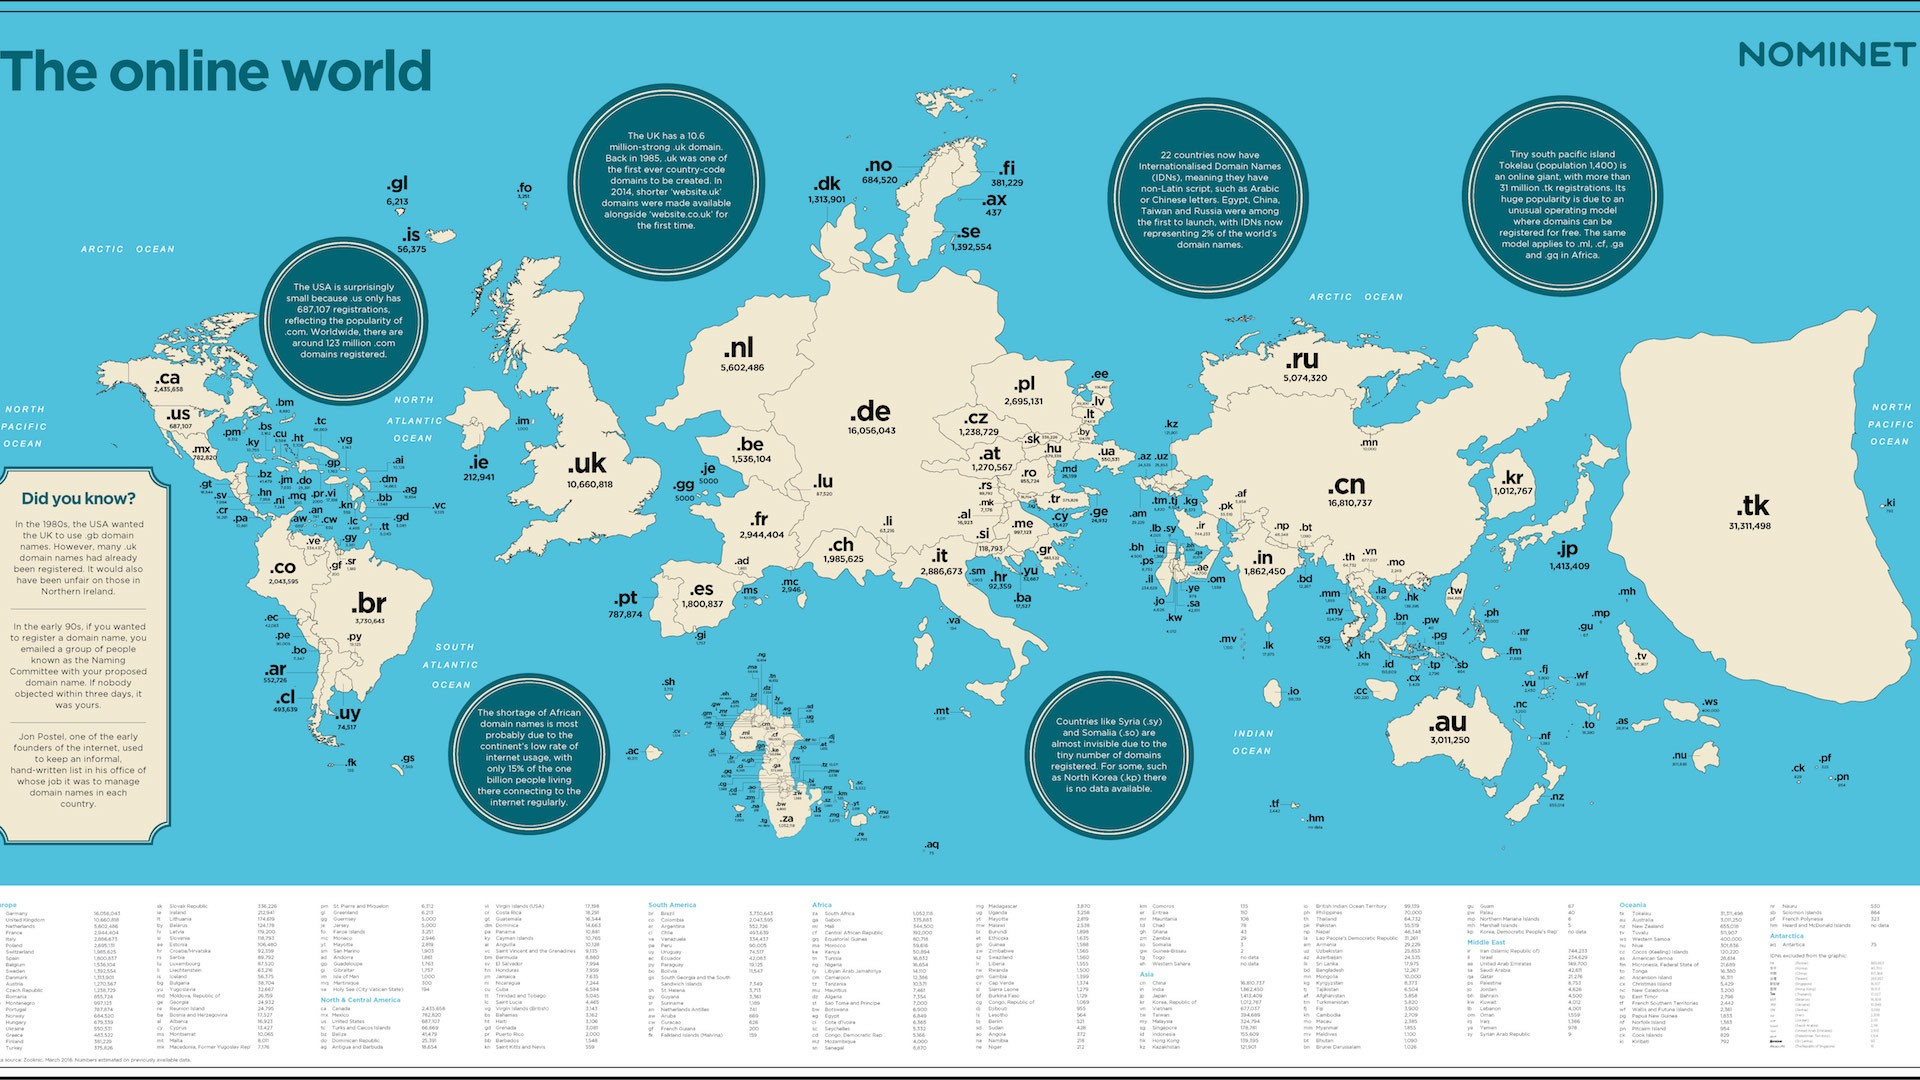 If Countries' Web Domains Were Land Masses, Earth Would Look Like This